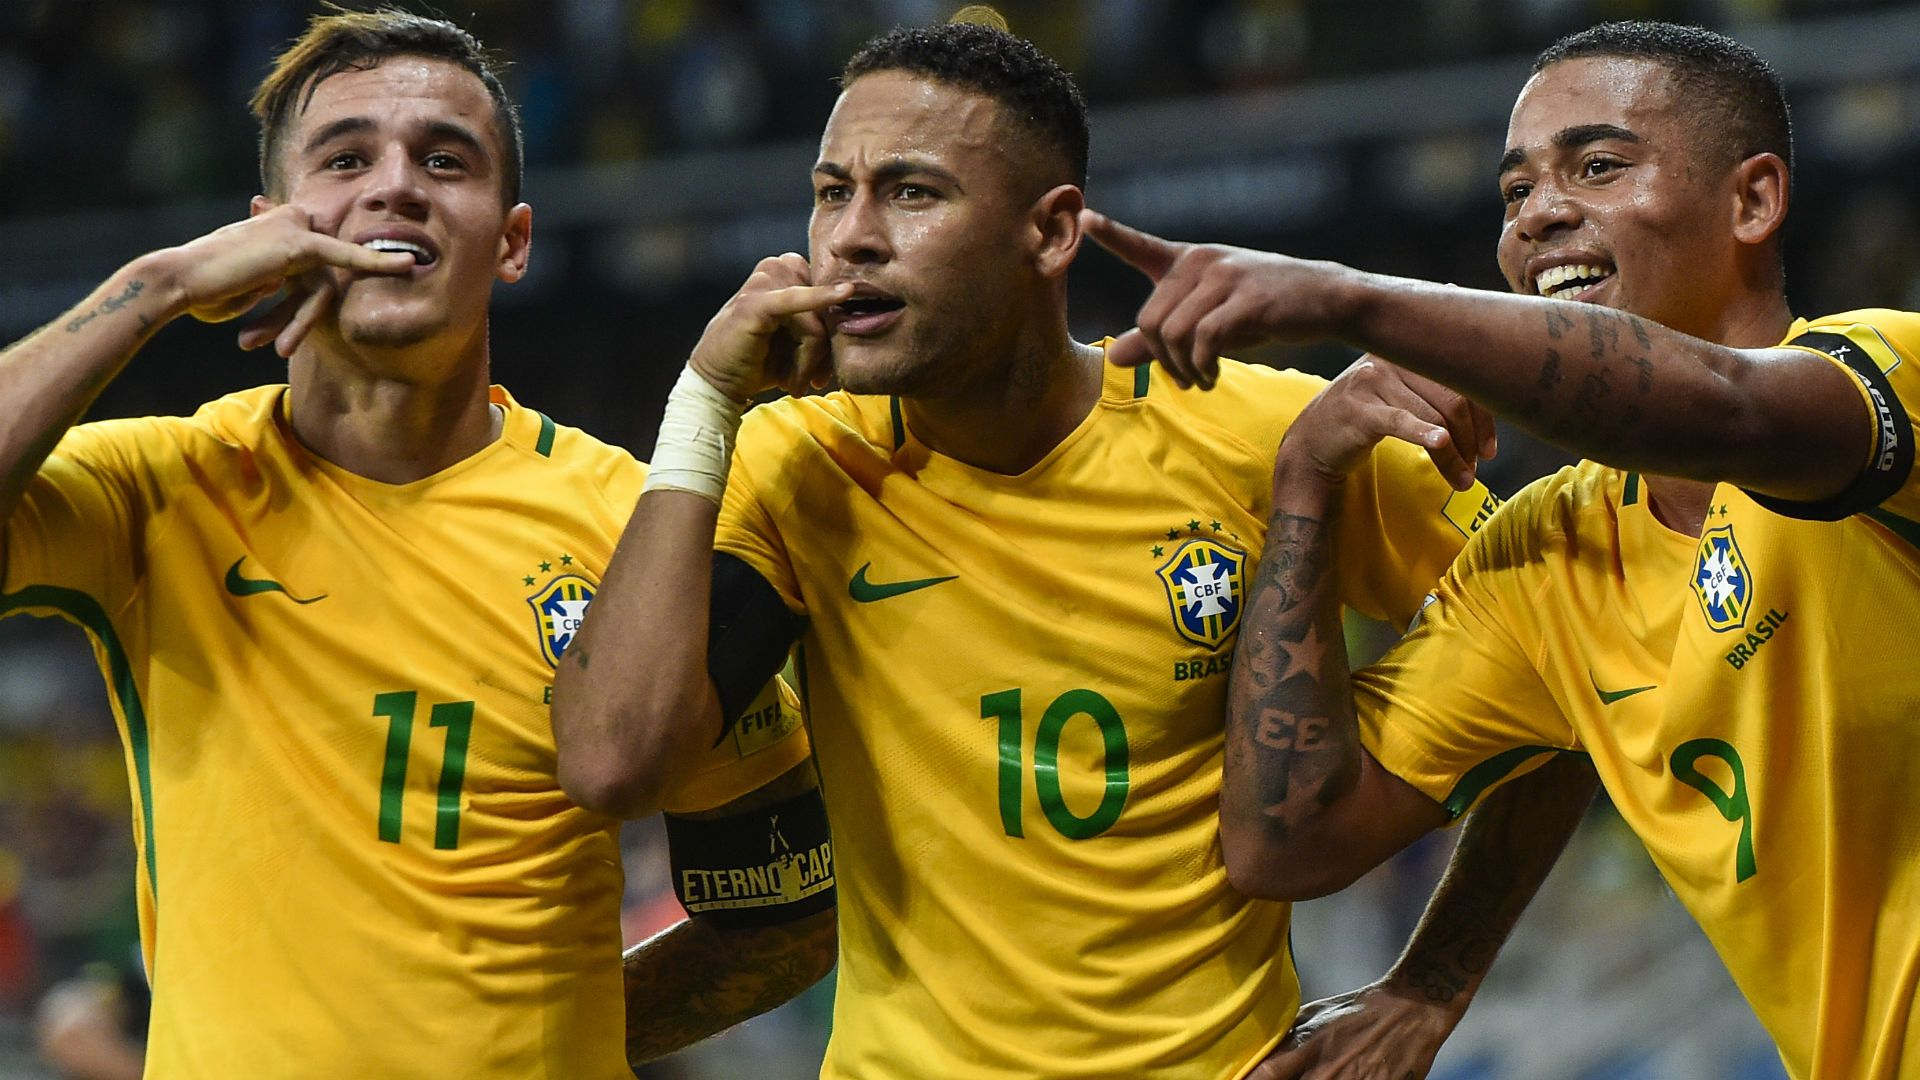 The Star Participant The Coach The Team And Everything You Need To Know About Brazil Ahead Of World Cup 2018 Piala Dunia Juara Neymar